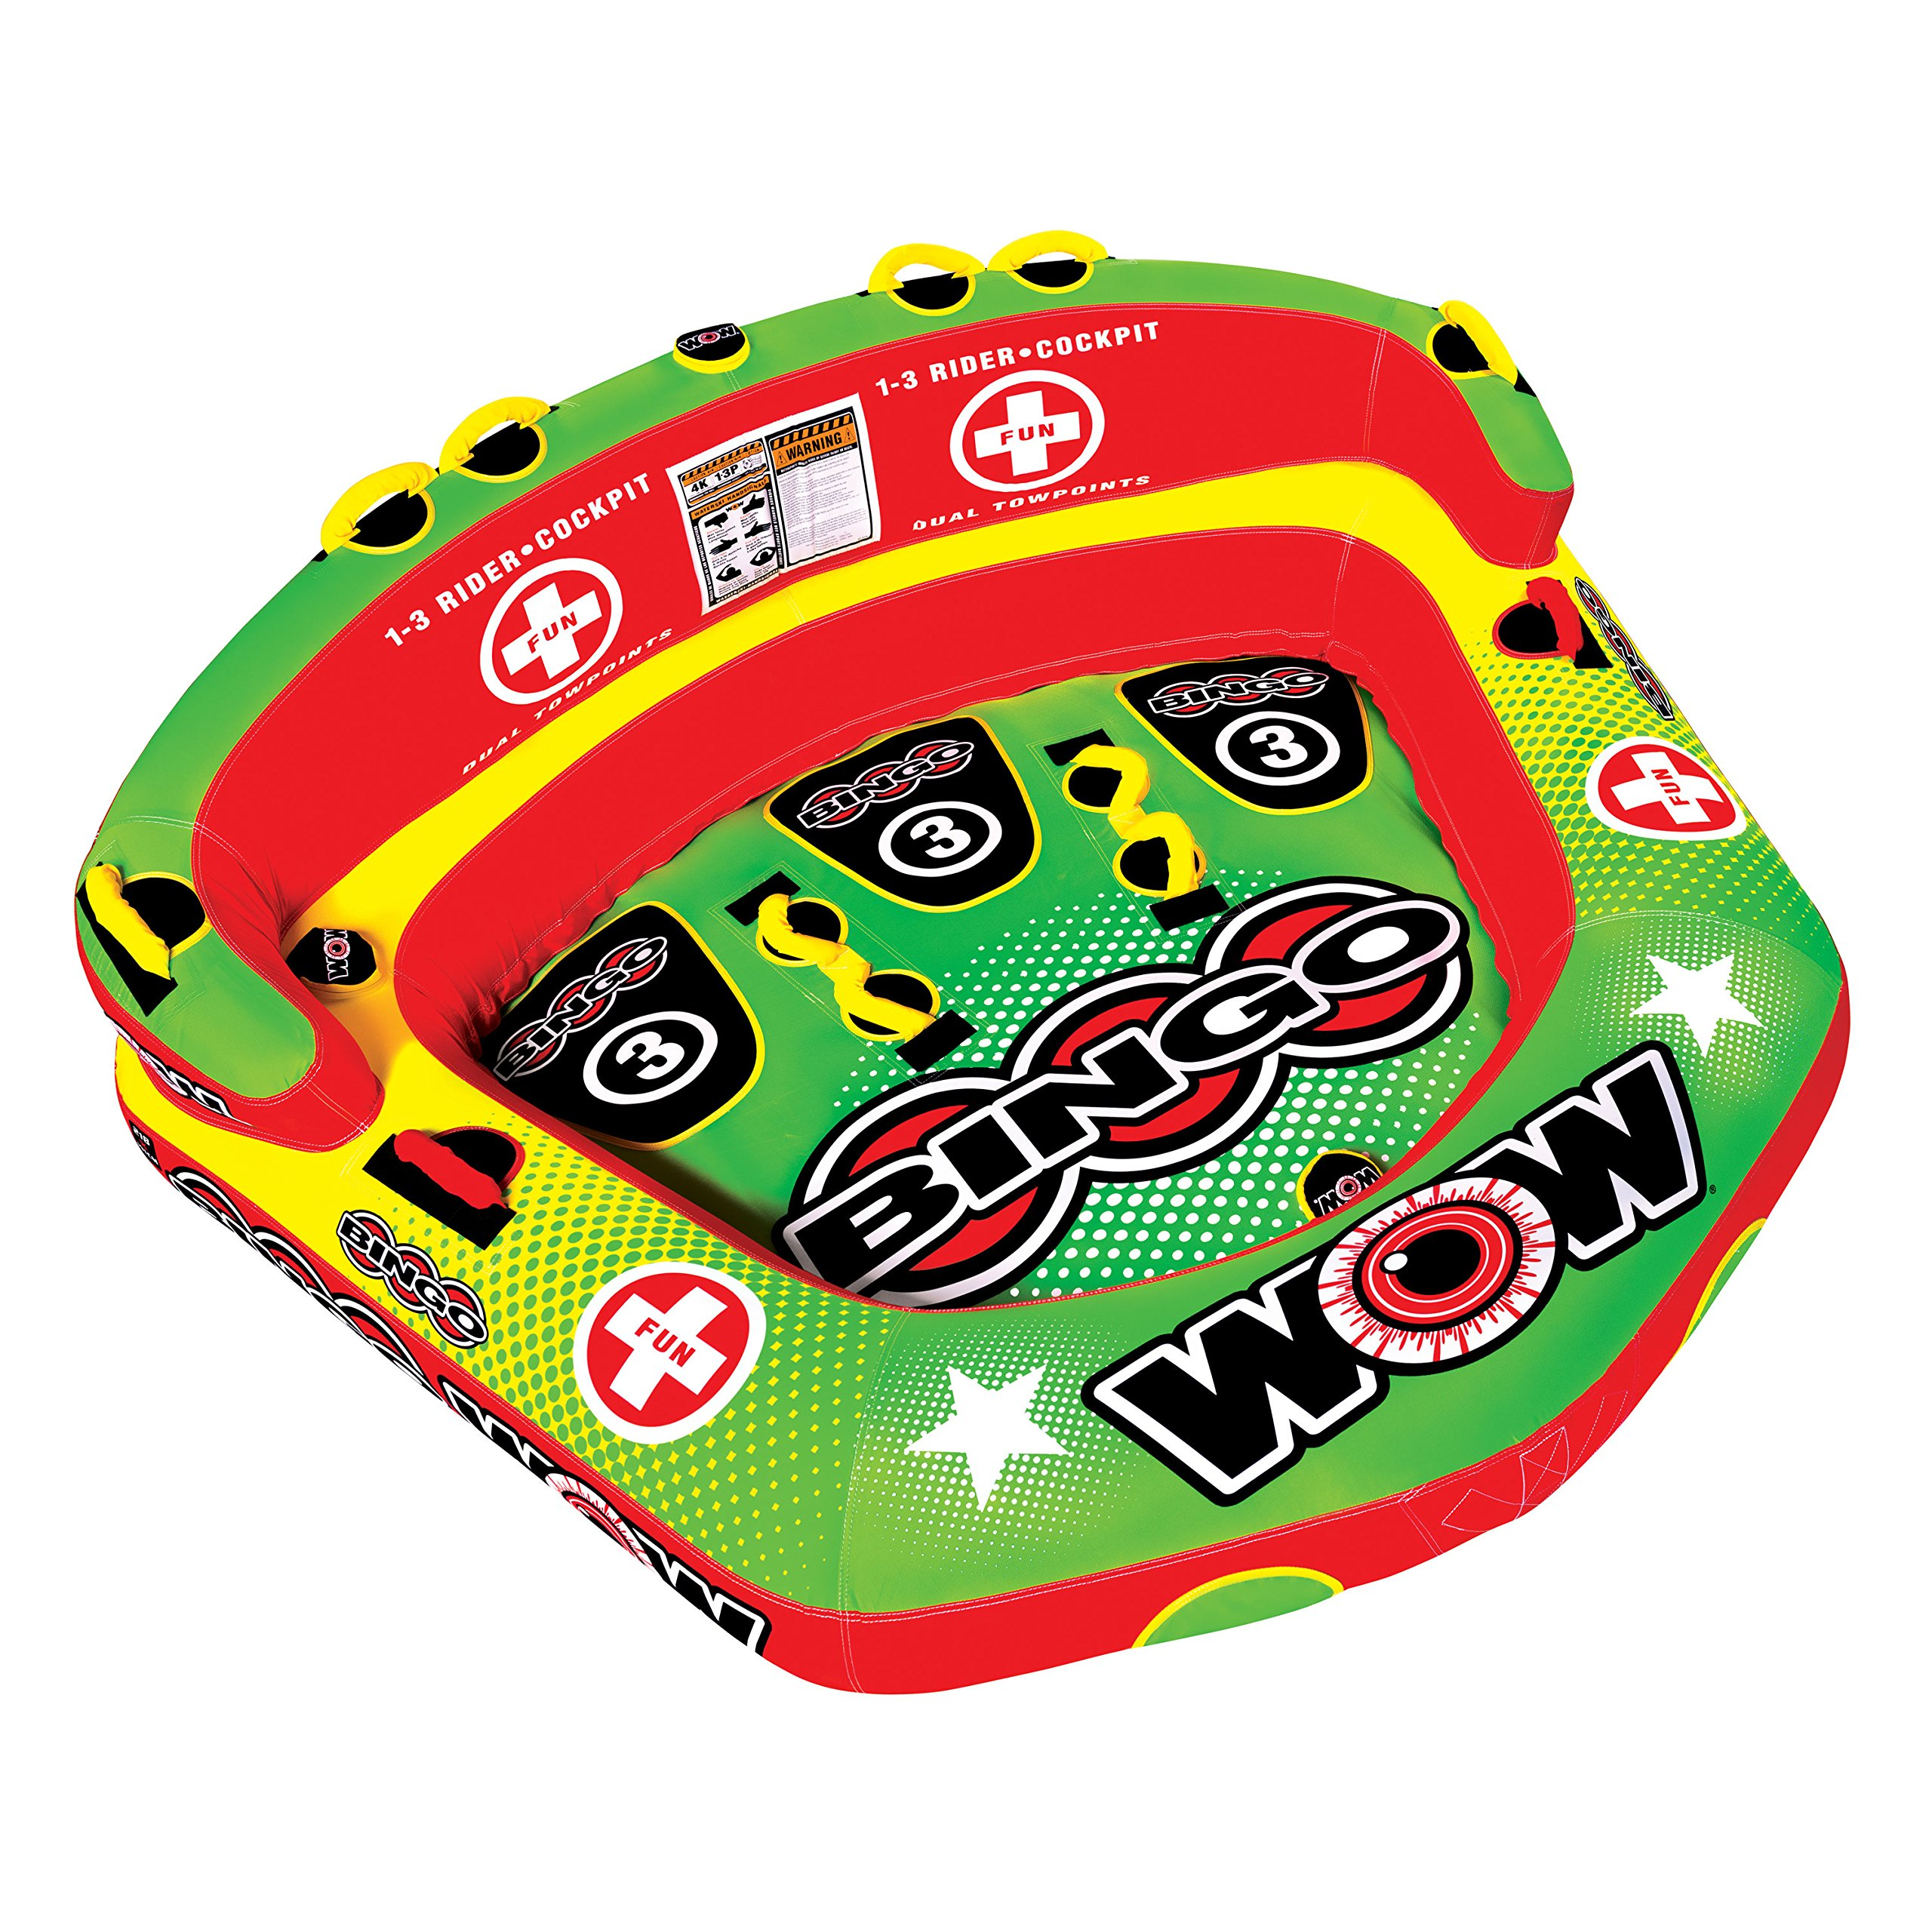 WOW Bingo 3 Rider Towable by WOW